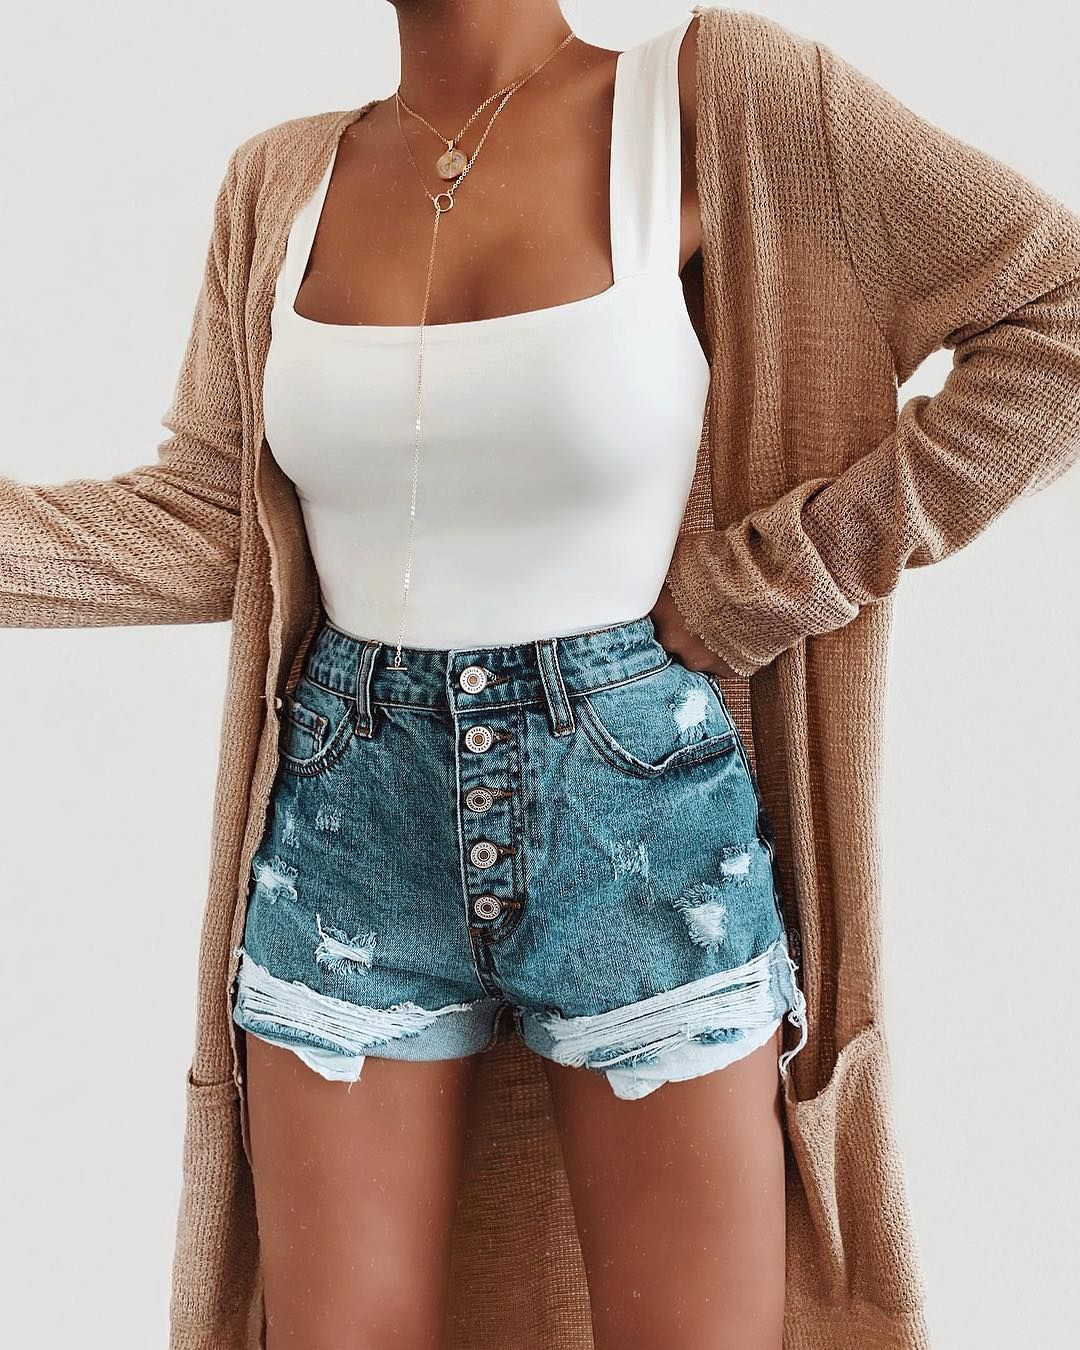 Warmer weather calls for this cute outfit via @vicidolls #vicidolls #vicicollab Discount Cod #outfitswithshorts